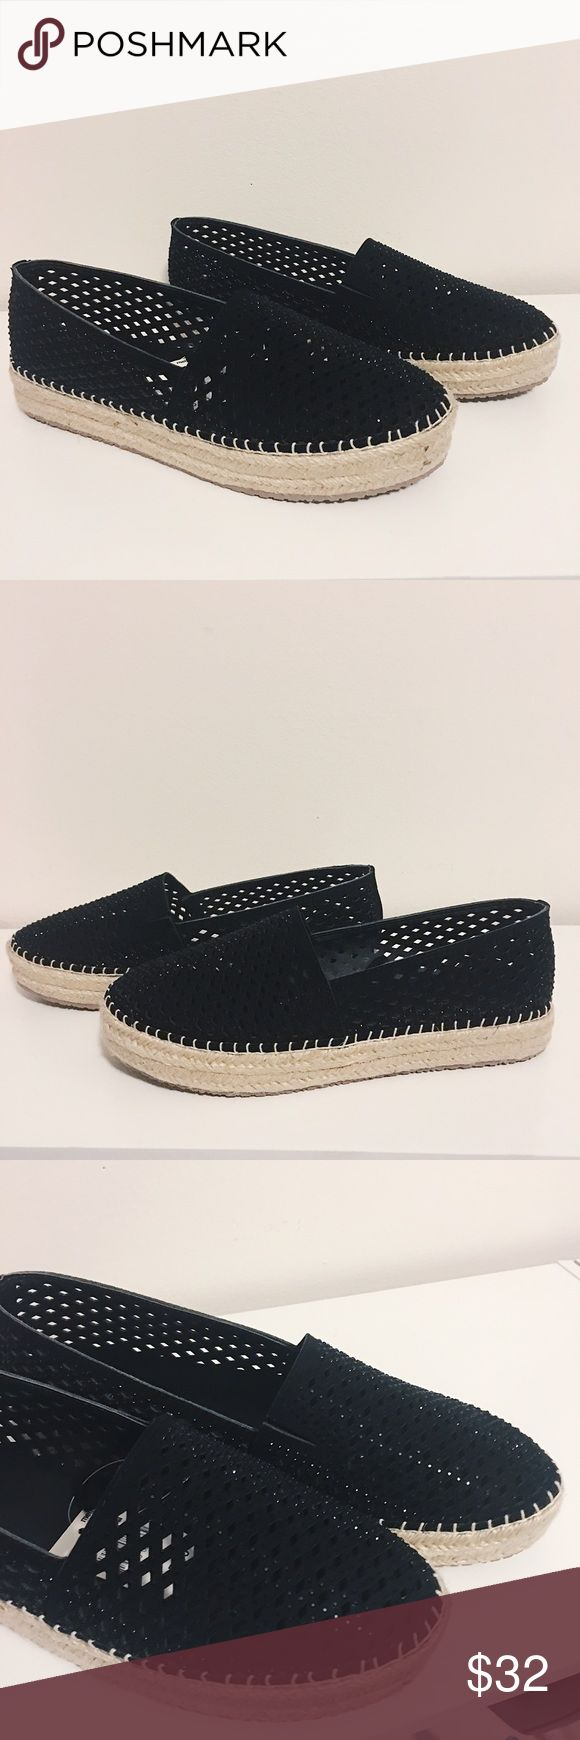 Beautiful Black Espadrilles! These beautiful black espadrilles have small subtle sequin that add a lovely touch of shimmer! Perfect for spring! Brand new, never worn! Shoes Espadrilles